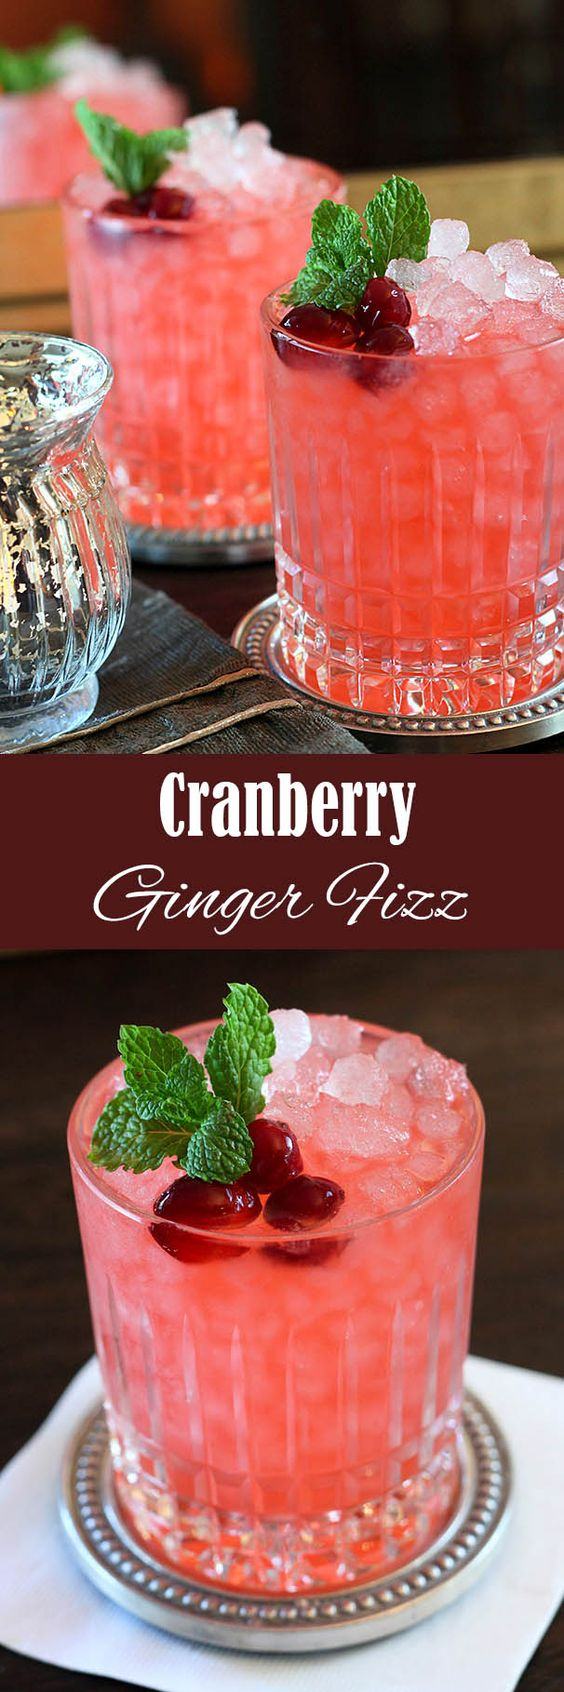 Cranberry Fizz Cocktail Recipe: Cocktails, Denver And Blog On Pinterest